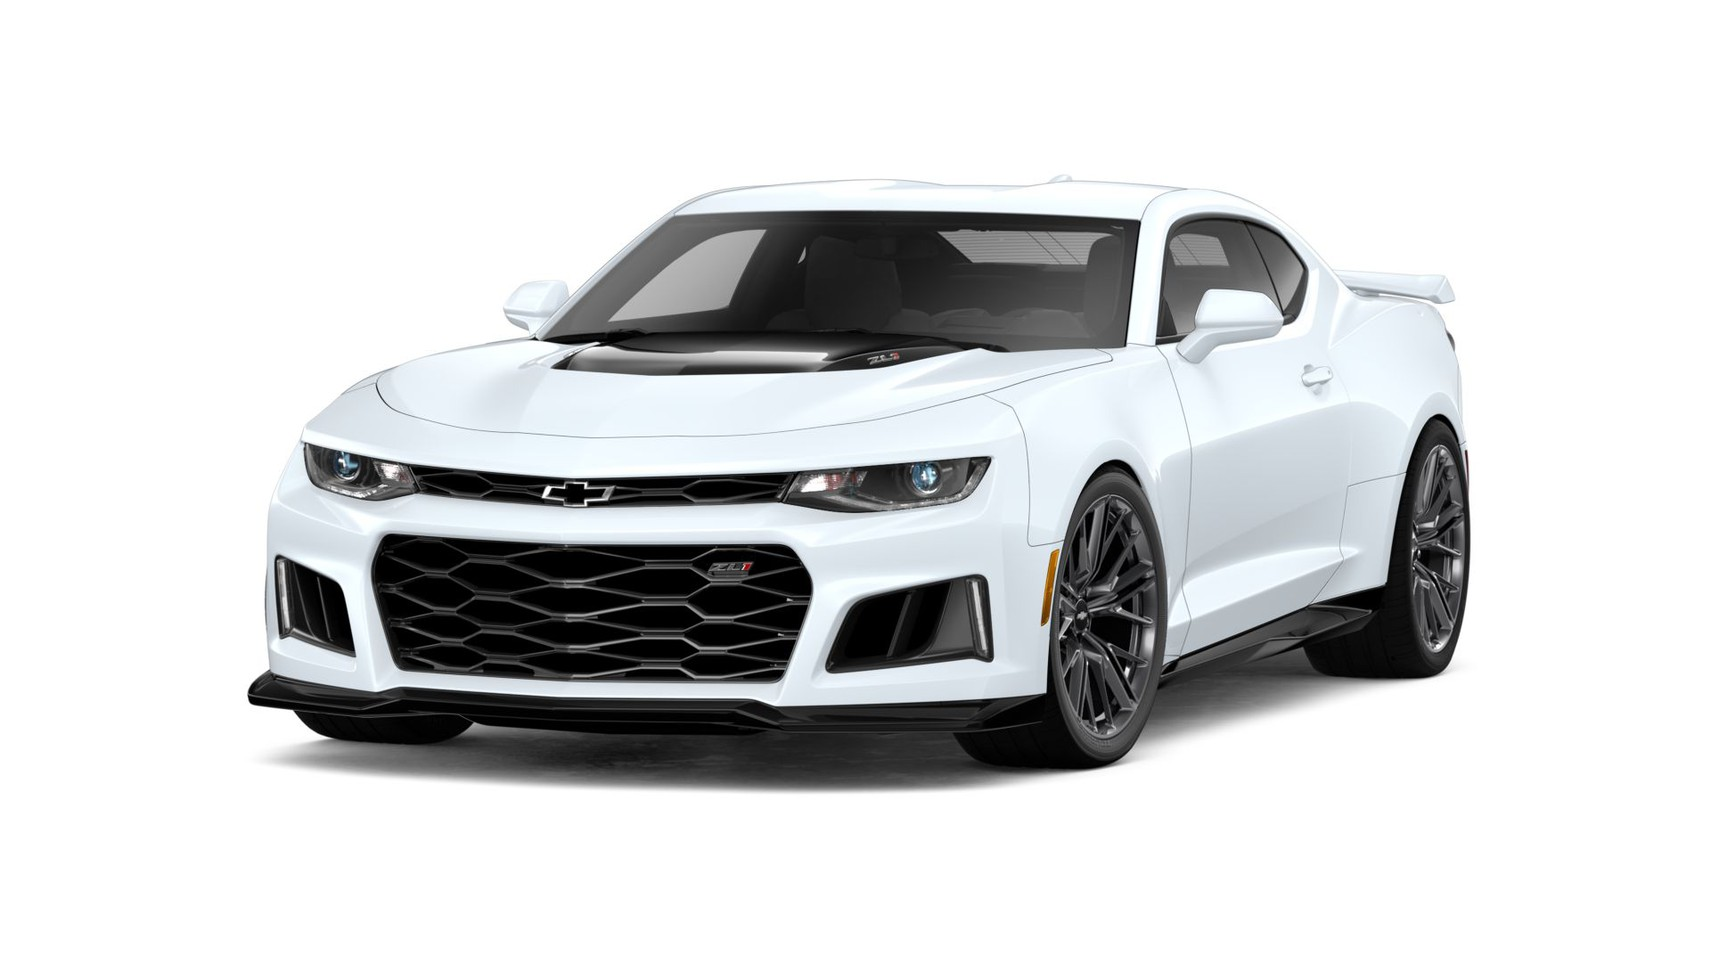 Chevrolet Camaro 2020 ZL1 Coupe 6.2 V8 Supercharged DI Бензин 10 ст АКПП Задний